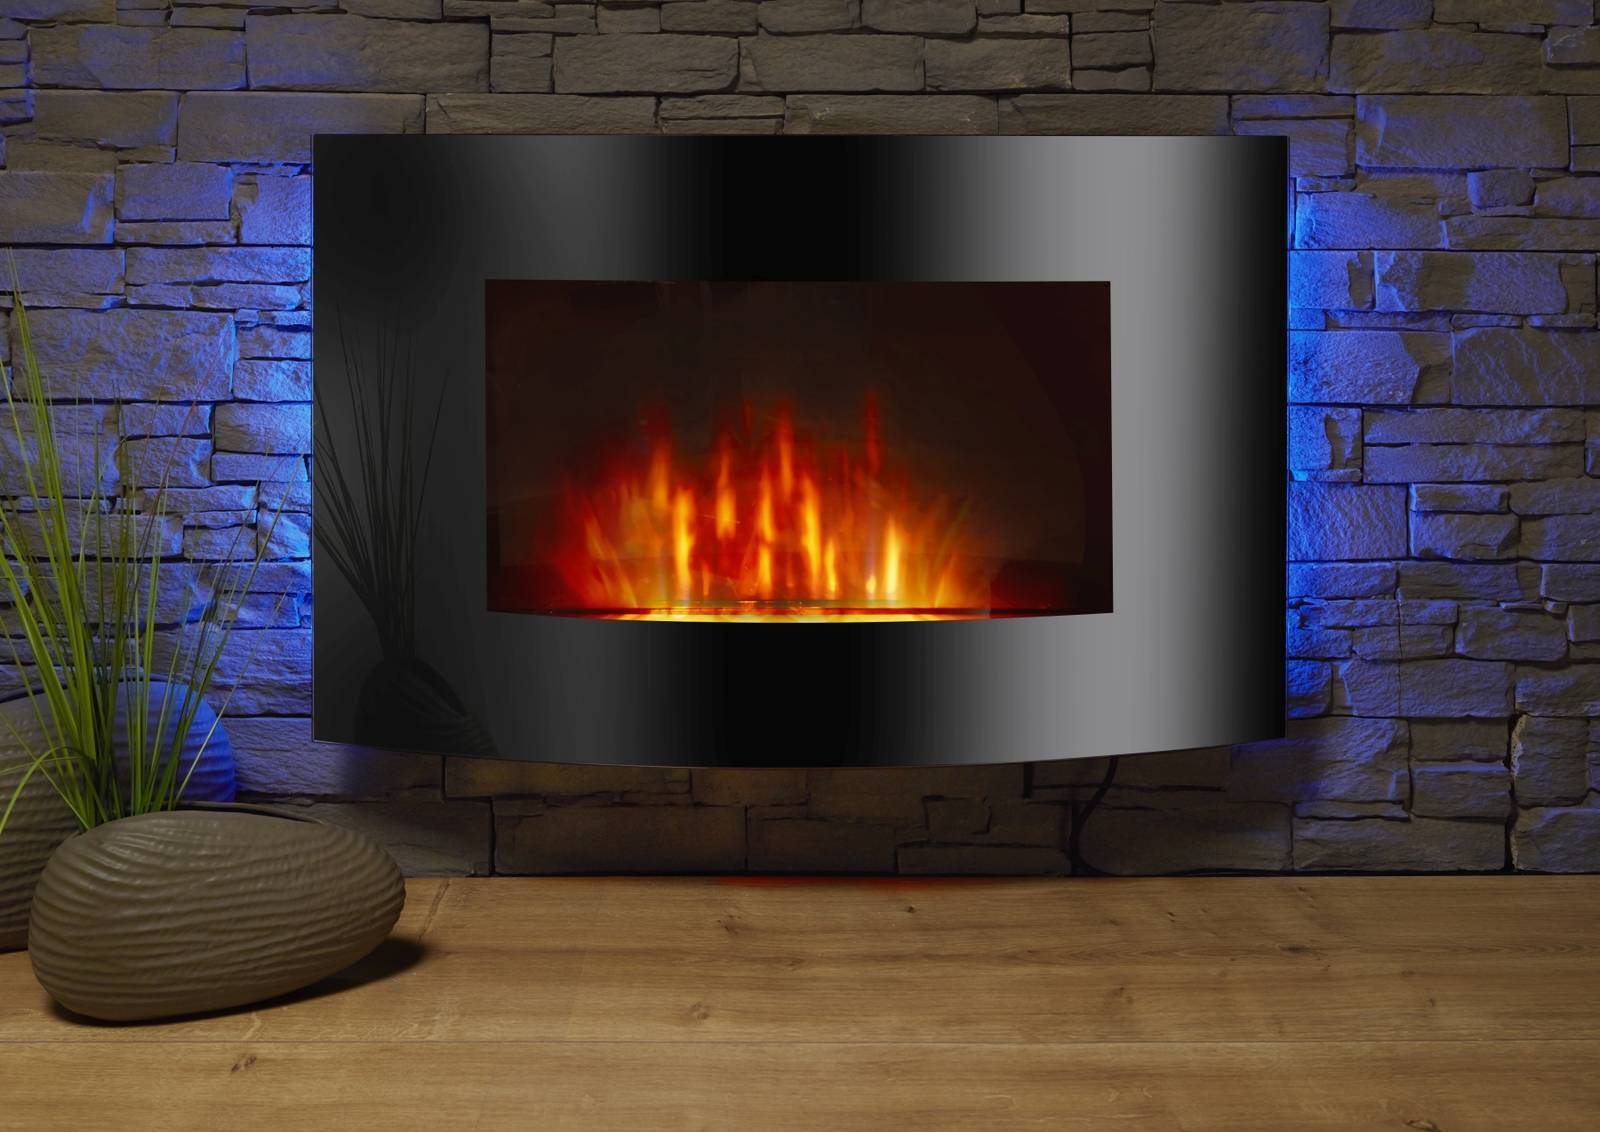 el fuego elektrokamin z rich mit led beleuchtung 2 stufen kamin deko ebay. Black Bedroom Furniture Sets. Home Design Ideas